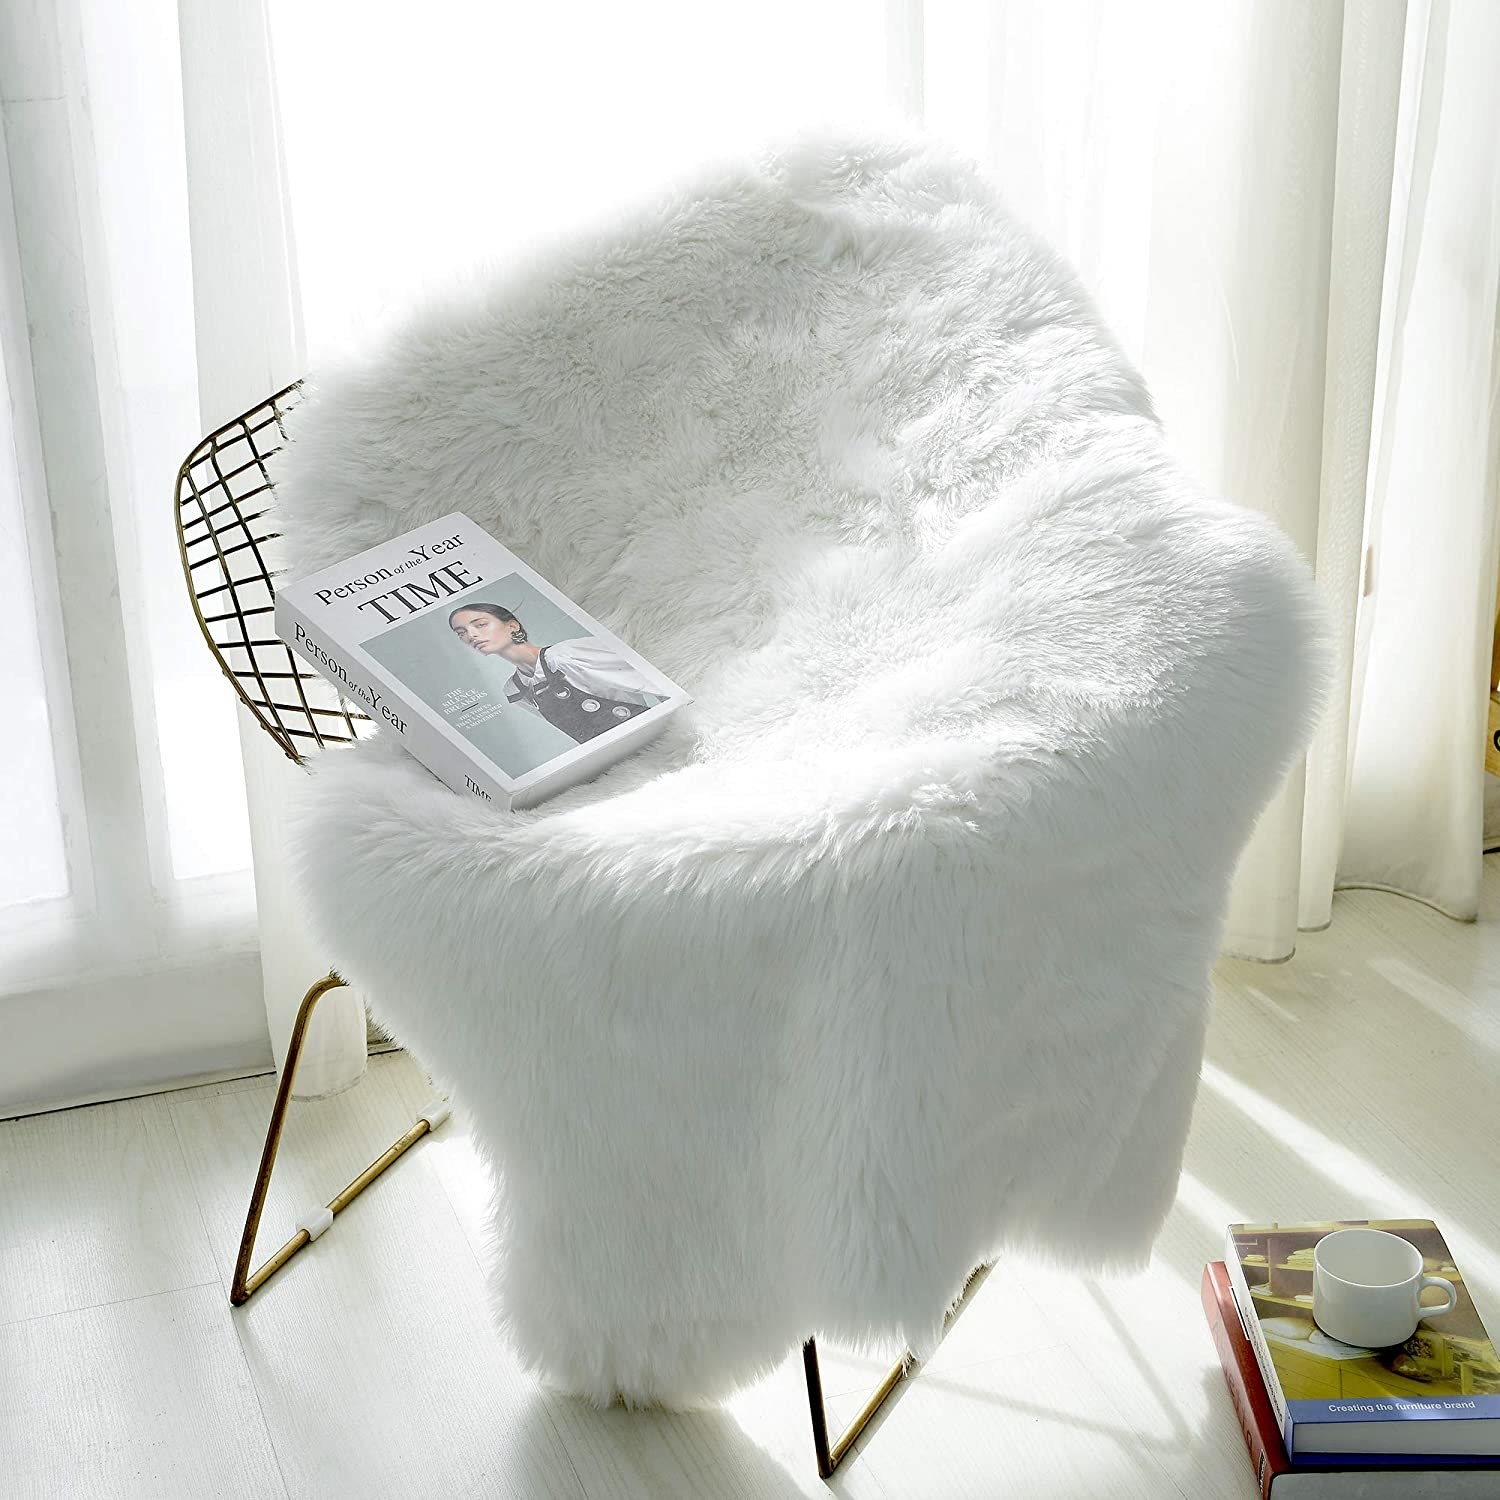 A fluffy rug laid over a metal chair